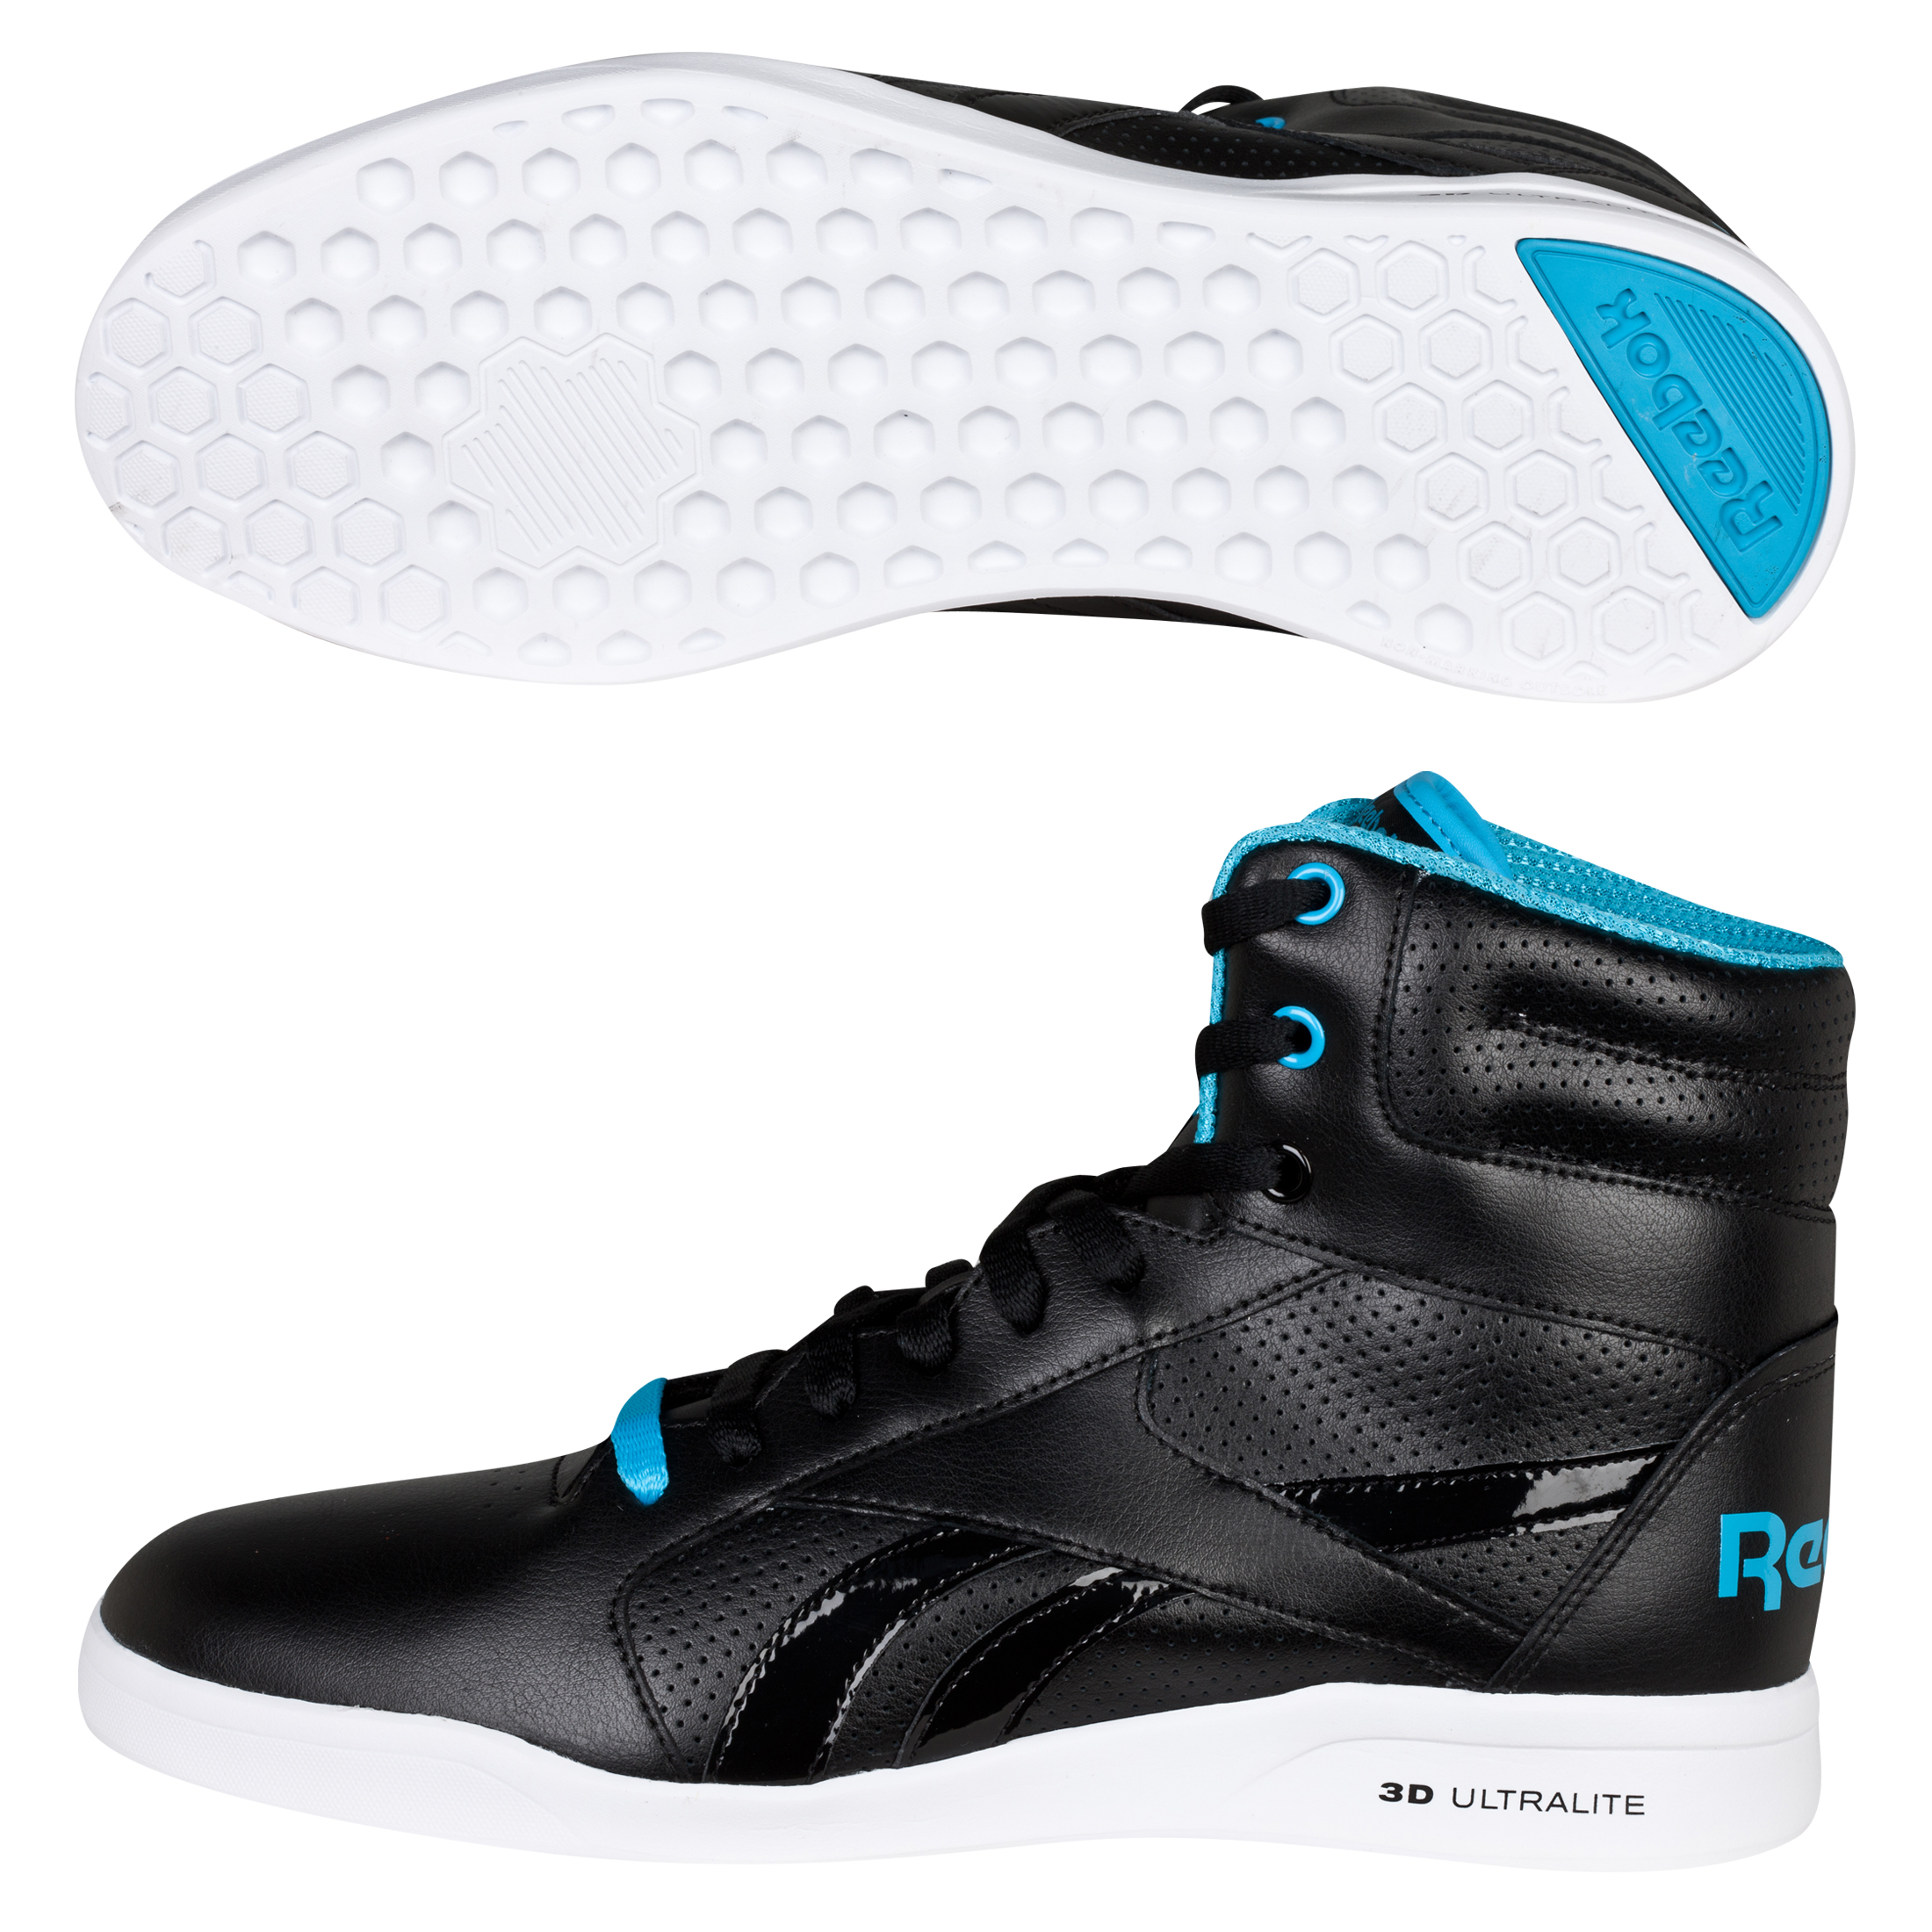 Reebok SL Fitness Ultralite Hi Trainers - Black/Buzz Blue/White